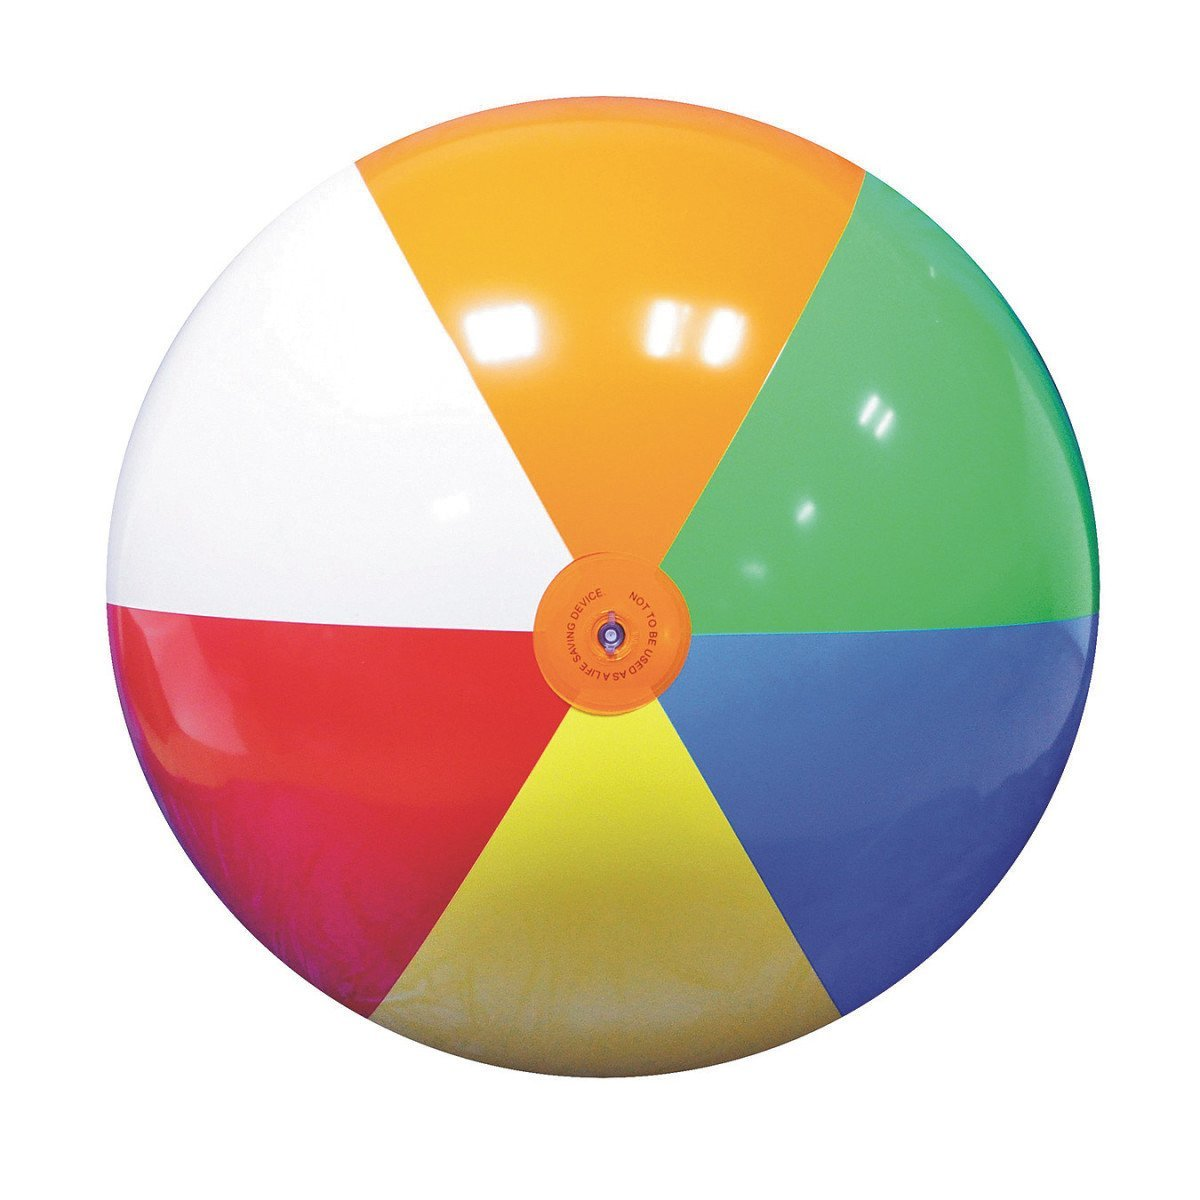 Jet Creations Giant Inflatable Beach Ball 66'' Inflated Size GBB08, Multicolor by Jet Creations